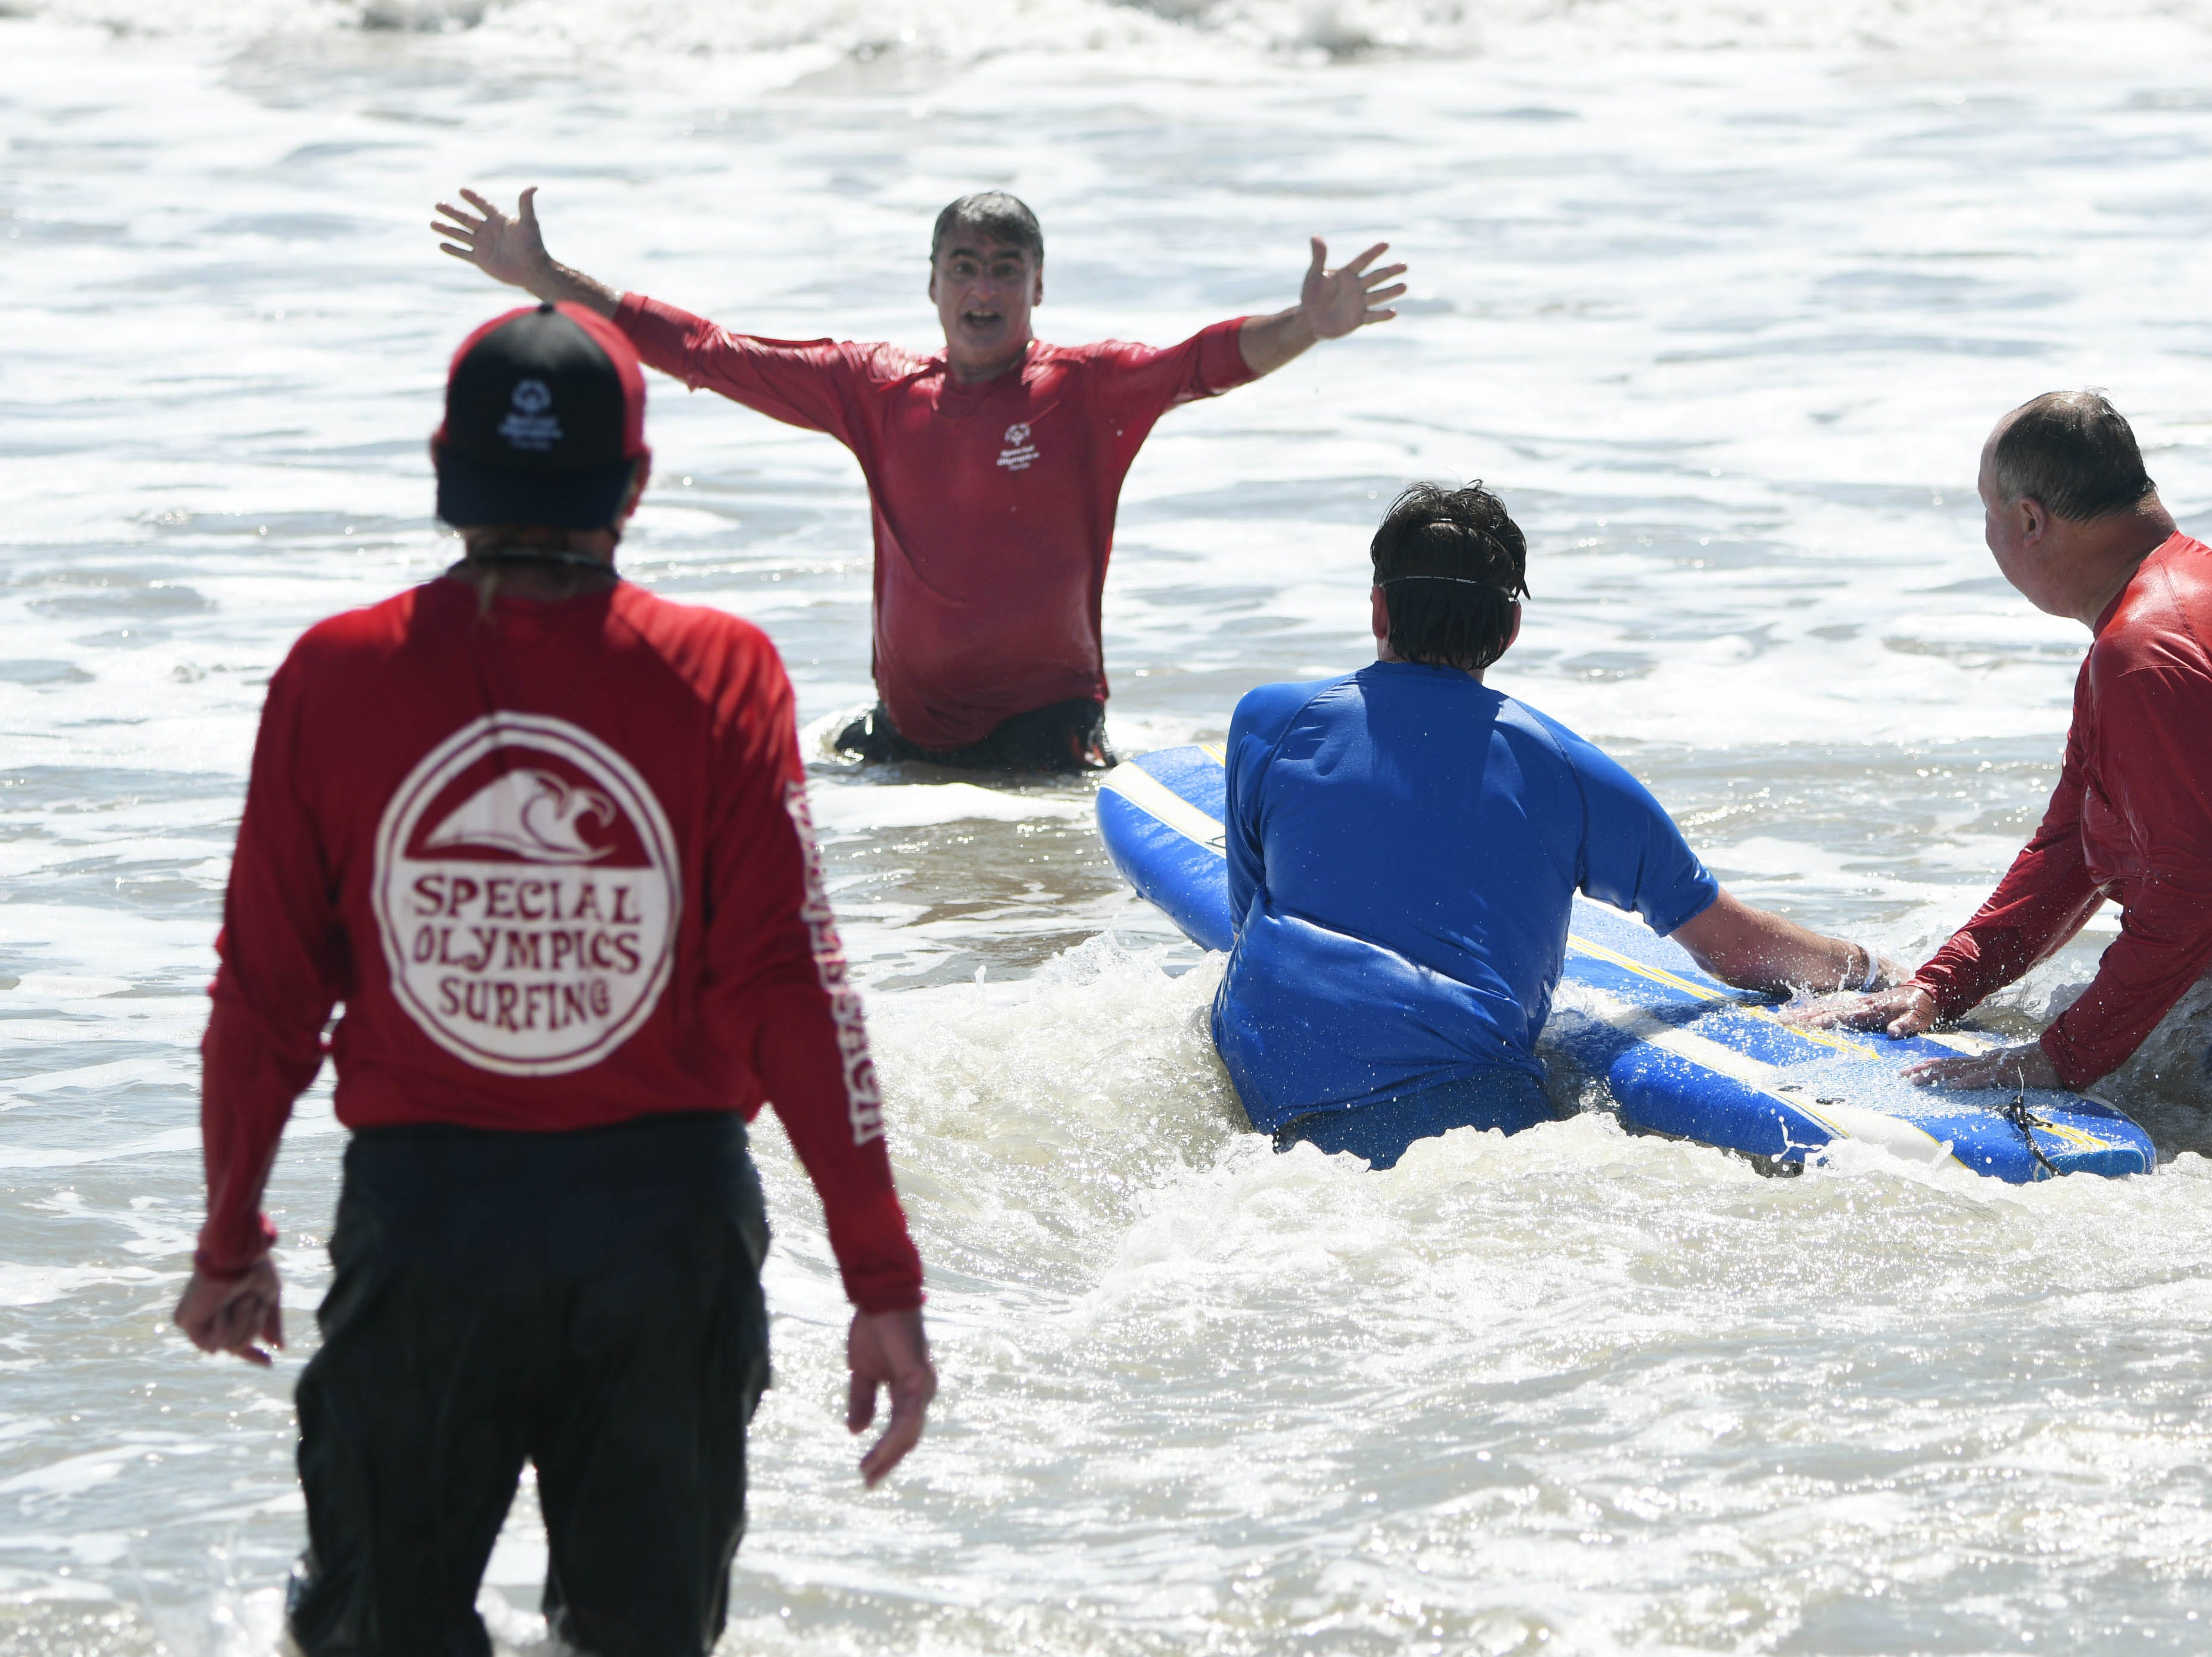 Bryand Padron ia encouraged and supported by his father Alfredo and other volunteers during the Special Olympics Florida spring surfing festival at Shepard Park.